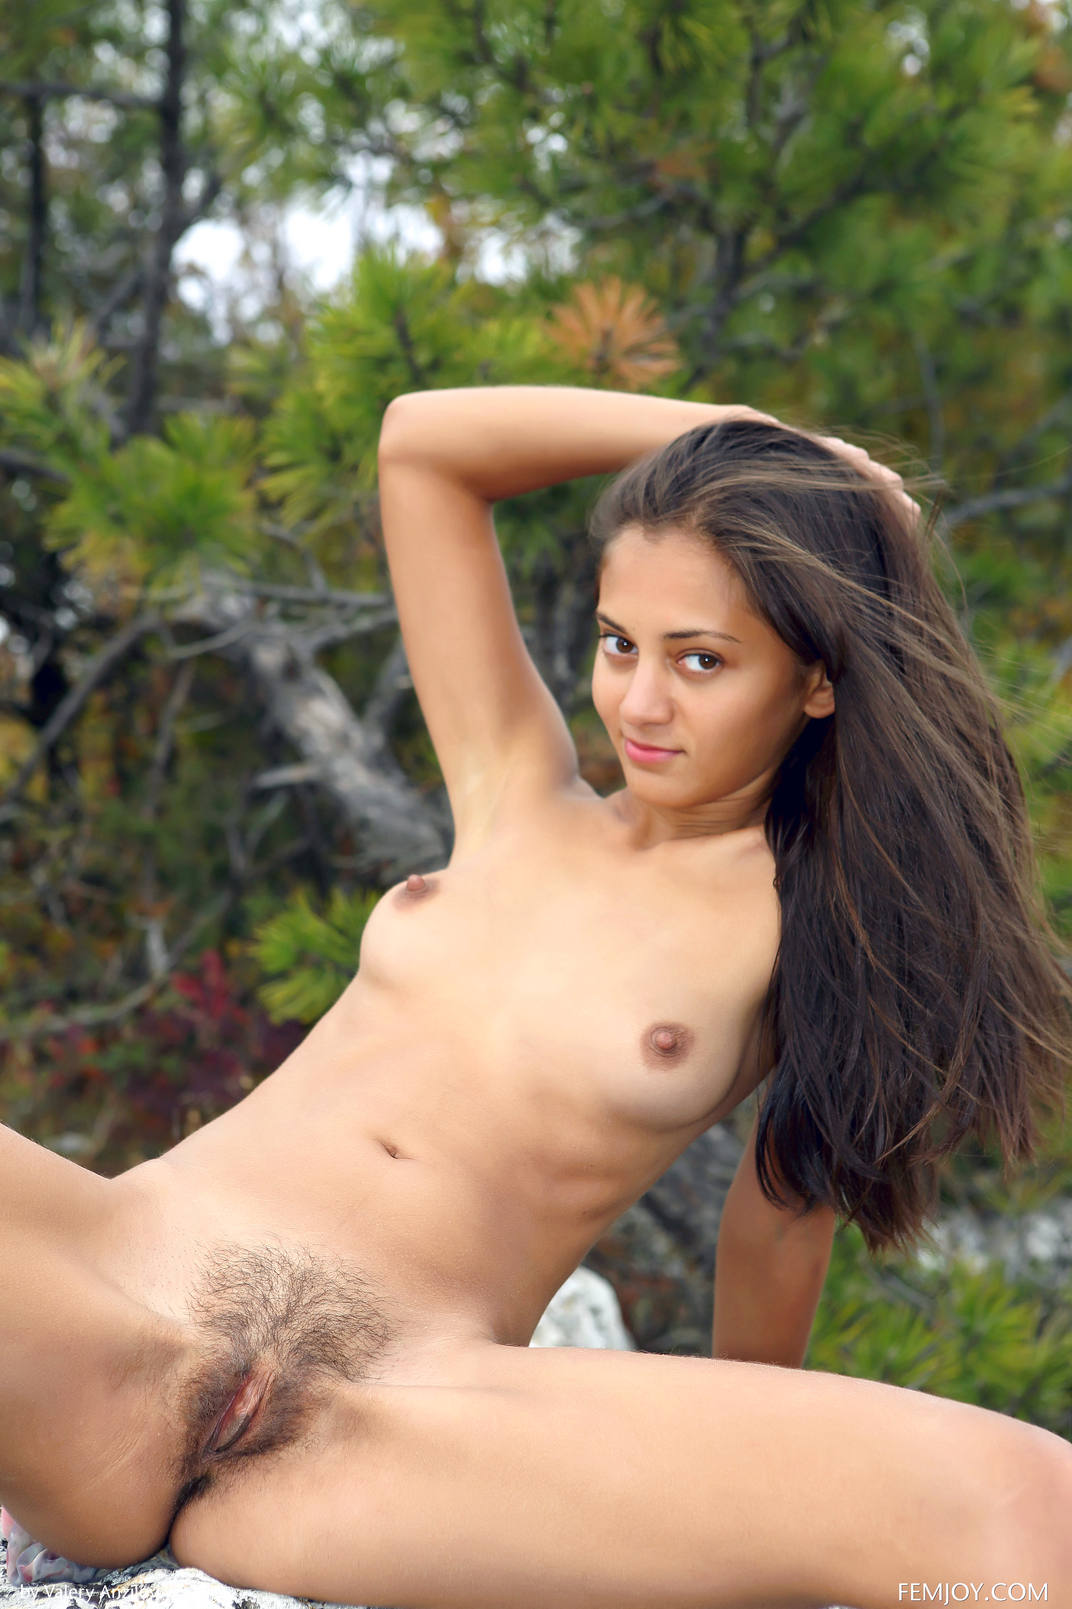 and natural Boys nudism girls